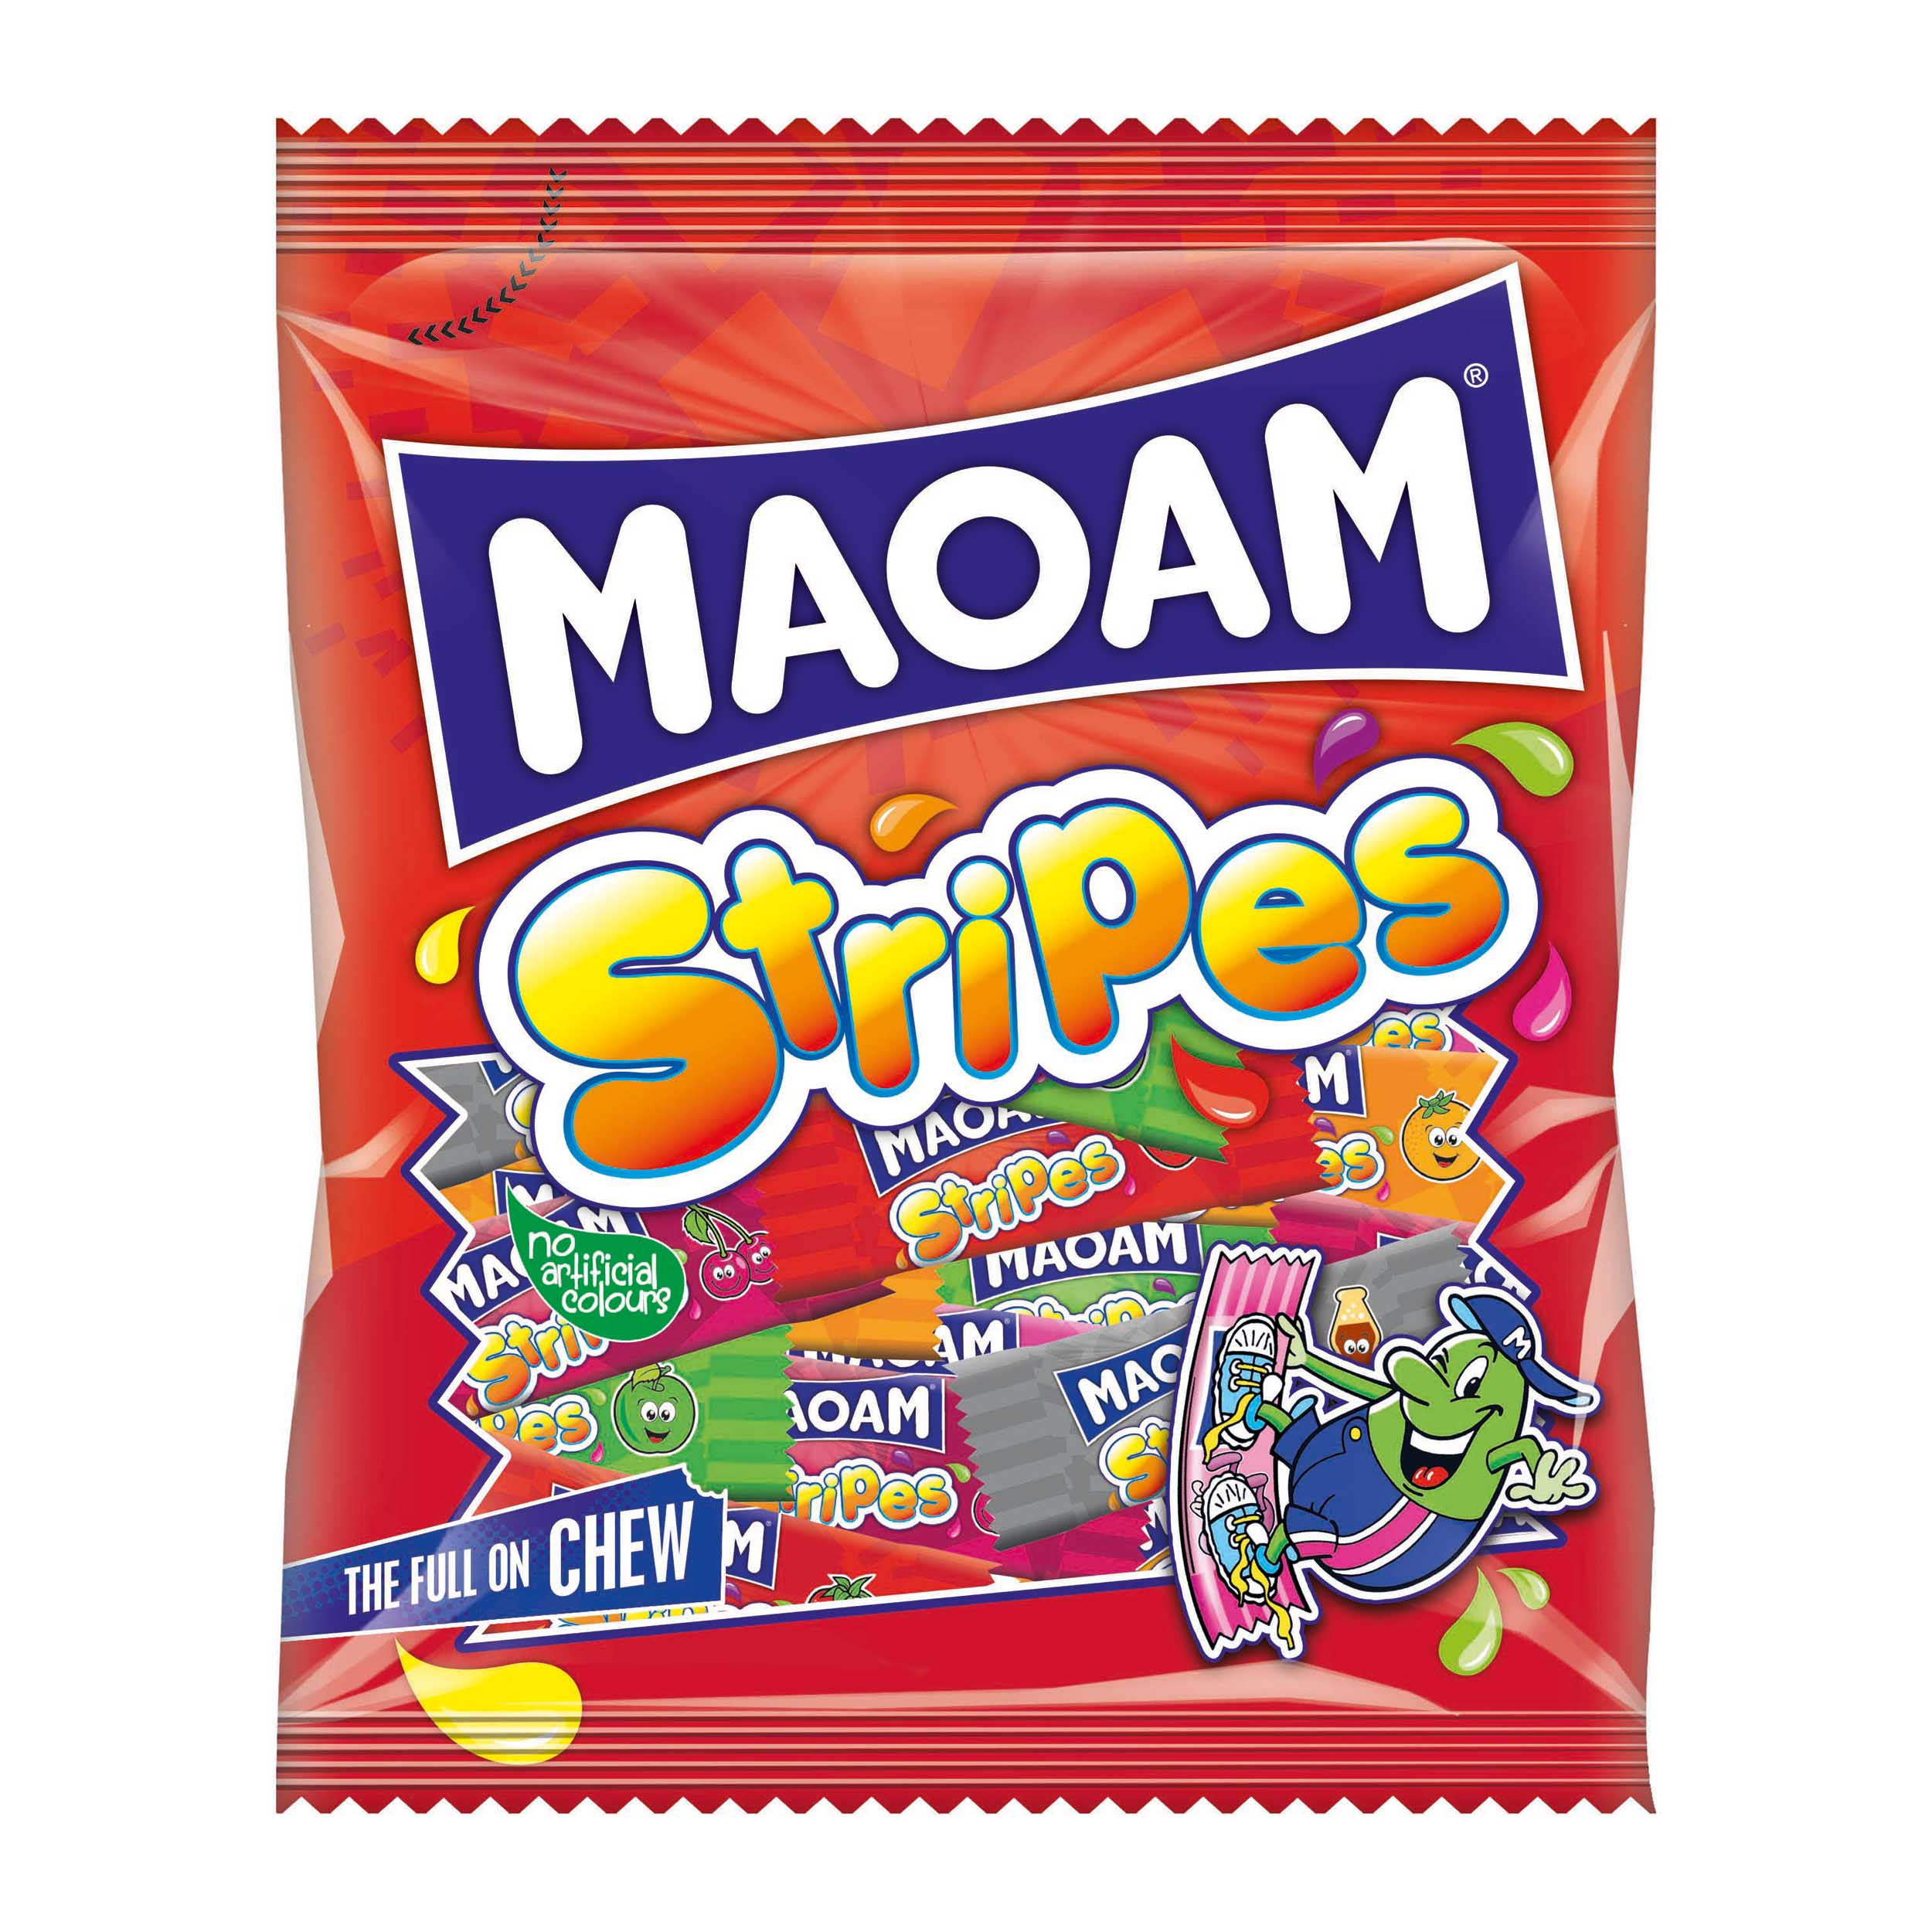 Natural sugars or sweetening products Haribo Maoam Stripes 140g Ref 580730